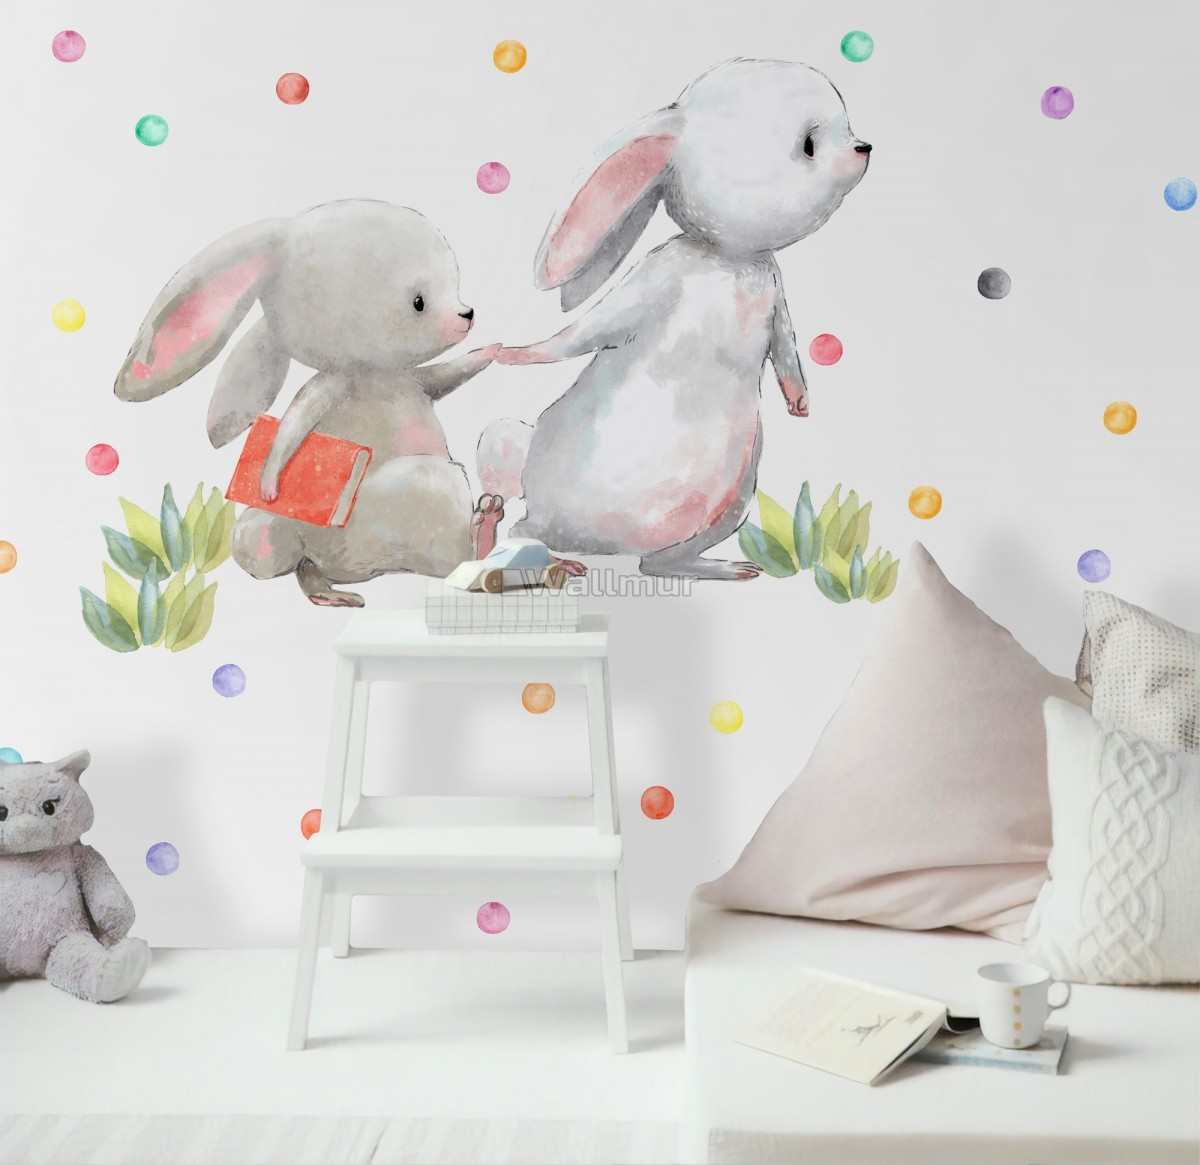 The Cute Bunny Reading Books with Colorful Polka Dots Kids Wall Decal Sticker